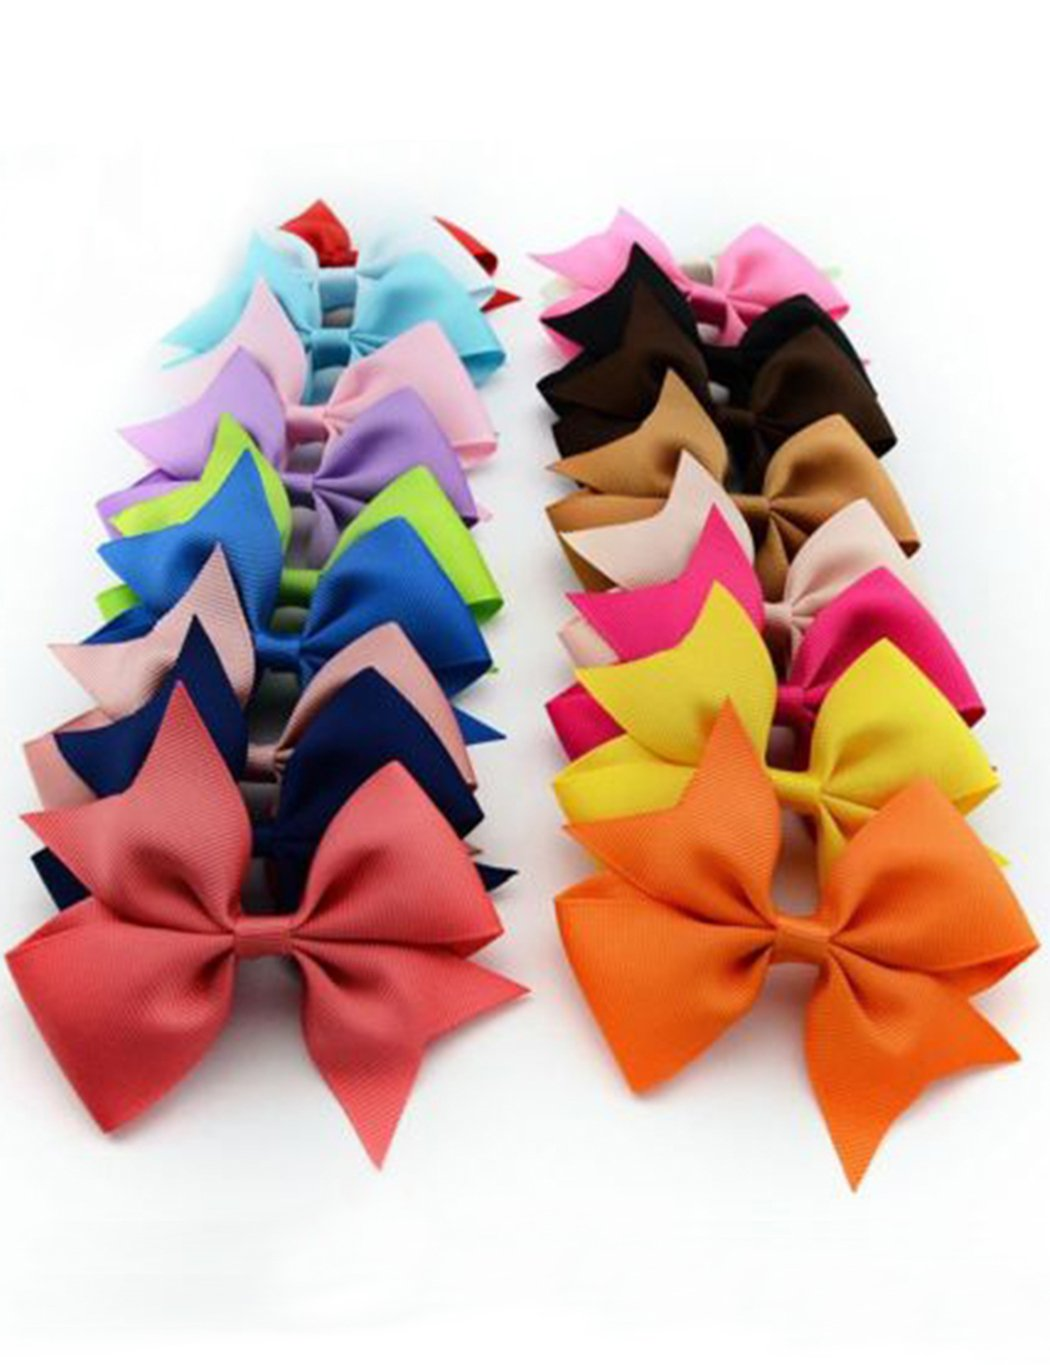 Angoo Beauty 10pcs Girls Ribbon Bow Hair Clip Kids Alligator Clips Party Hair Accessories Facial Hair for Baby Girl Toddlers Kids(Multicolored)